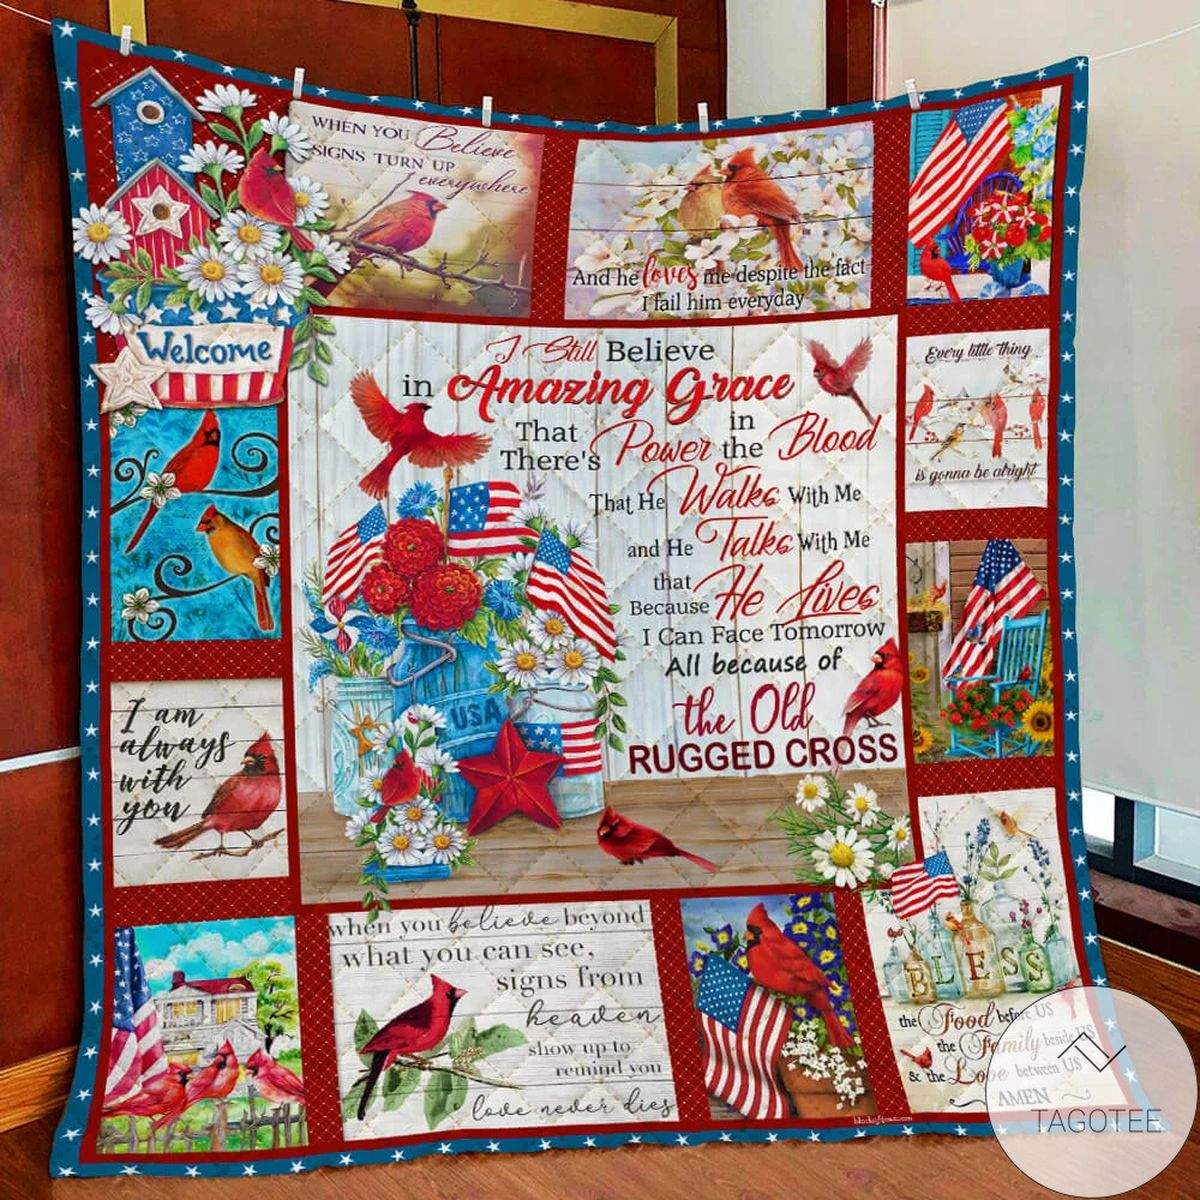 The Old Rugged Cross Cardinal Quilt